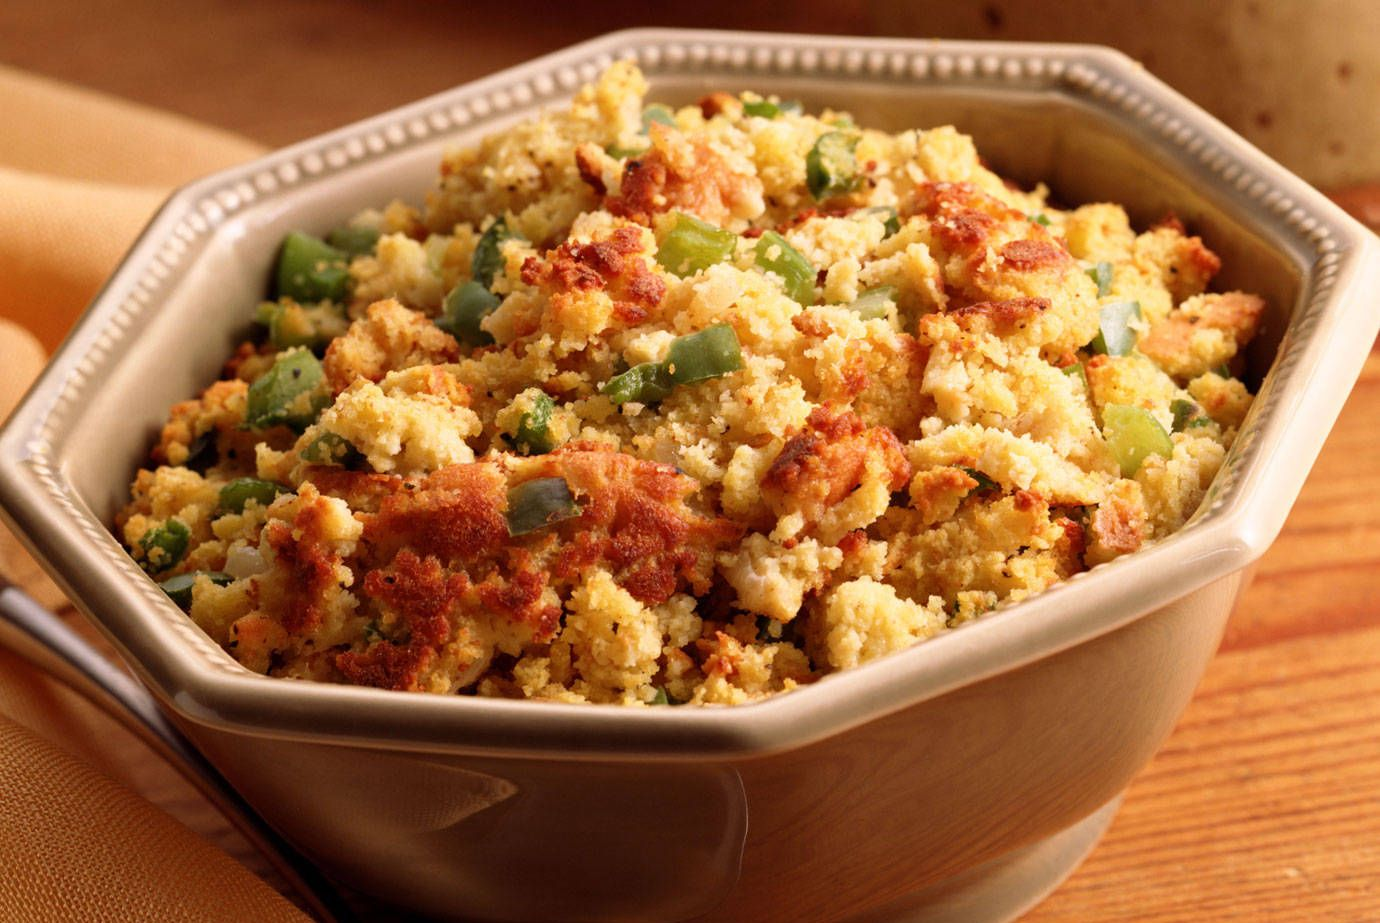 Ingredients:2 tbsp vegetable oil2 cups turkey or chicken stock1/2 cup grated Parmesan cheese1/2 lb white mushrooms4 tbsp vegetable oilSalt/pepper to taste1/4 cup white wine1/2 cup chopped fresh parsley1 lb Italian sausage1 recipe Gluten-free cornbread  Directions:1. Chop or crumble the sausages, and sauté them in a frying pan with the 2 T vegetable oil, until fully cooked.2. Cut the cornbread into small 1 inch cubes, and set aside.3.Wash and slice the mushrooms, and sauté them in the 4 T vegetable oil4.Once they are browned add the wine, allow wine to cook off. Season with salt and pepper.5. Add mushrooms, sausage, cheese and stock to the cubed cornbread and stir together, mixture should hold together. Add more stock if necessary.6. Bake stuffing in a lightly greased 4qt baking dish, in a pre-heated 350 degree oven until firm.7. Serve stuffing warm.